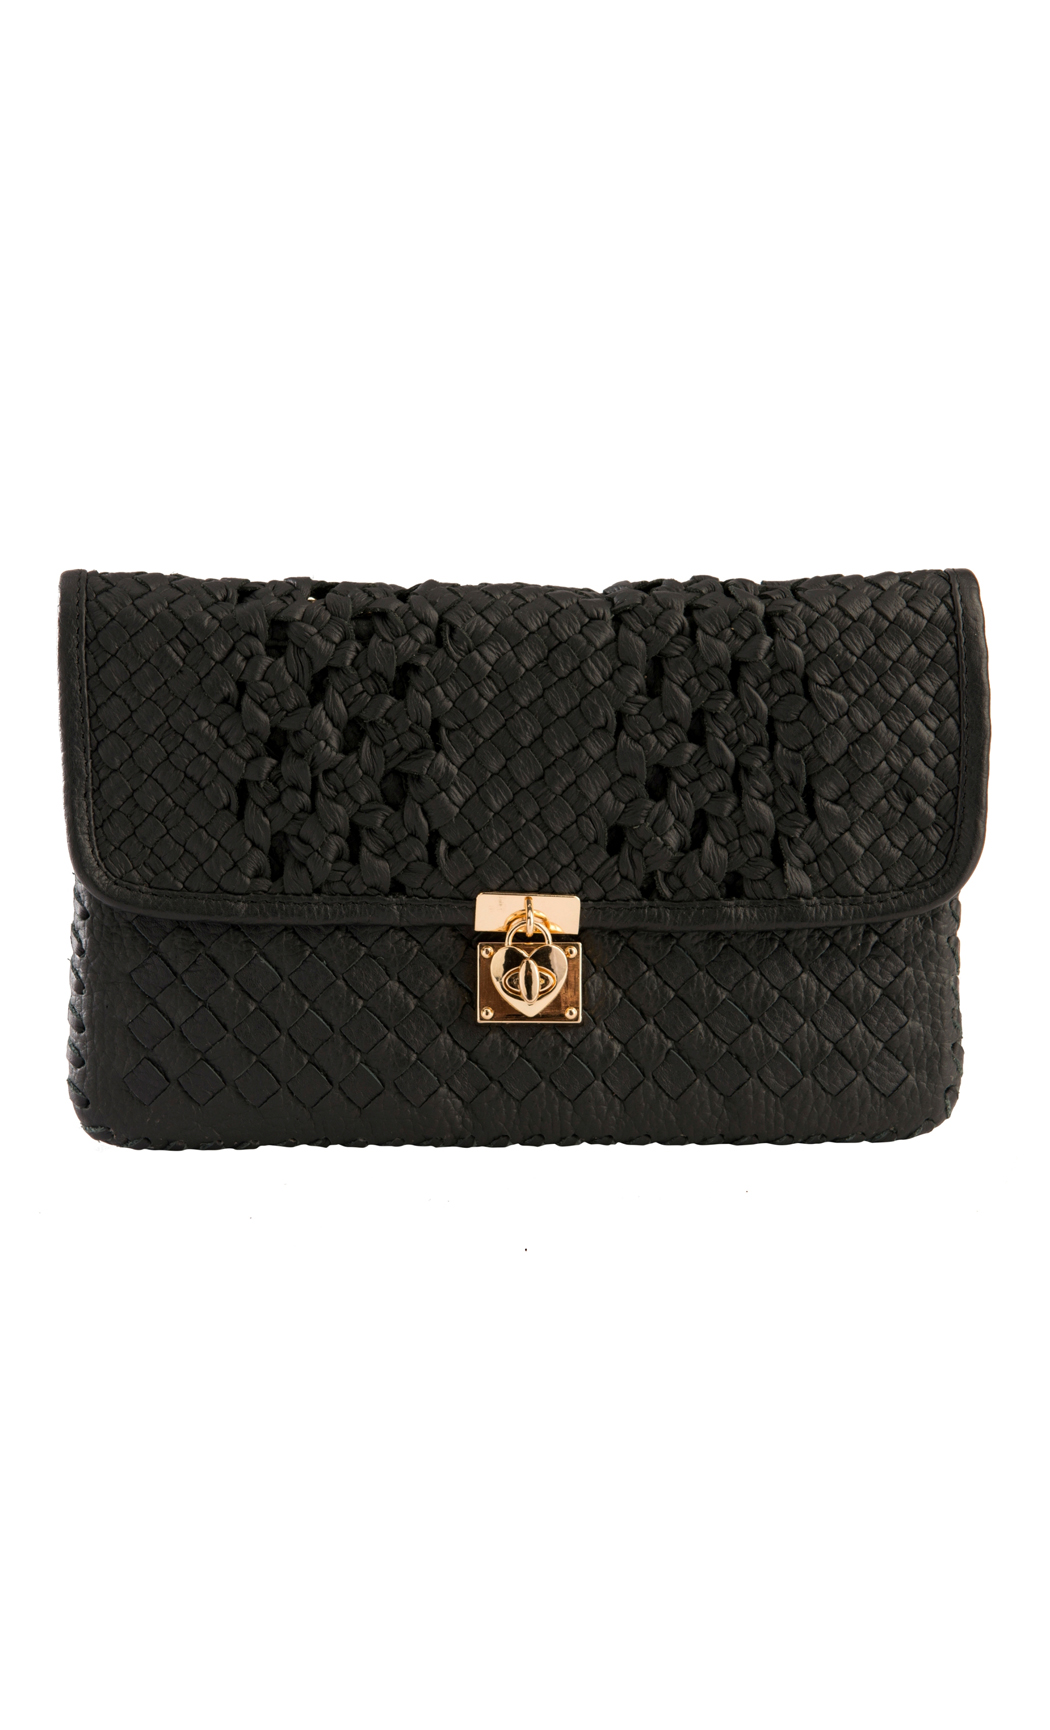 Classic Weave Two Weave Clutch with Heart Lock in Black. Buy Online